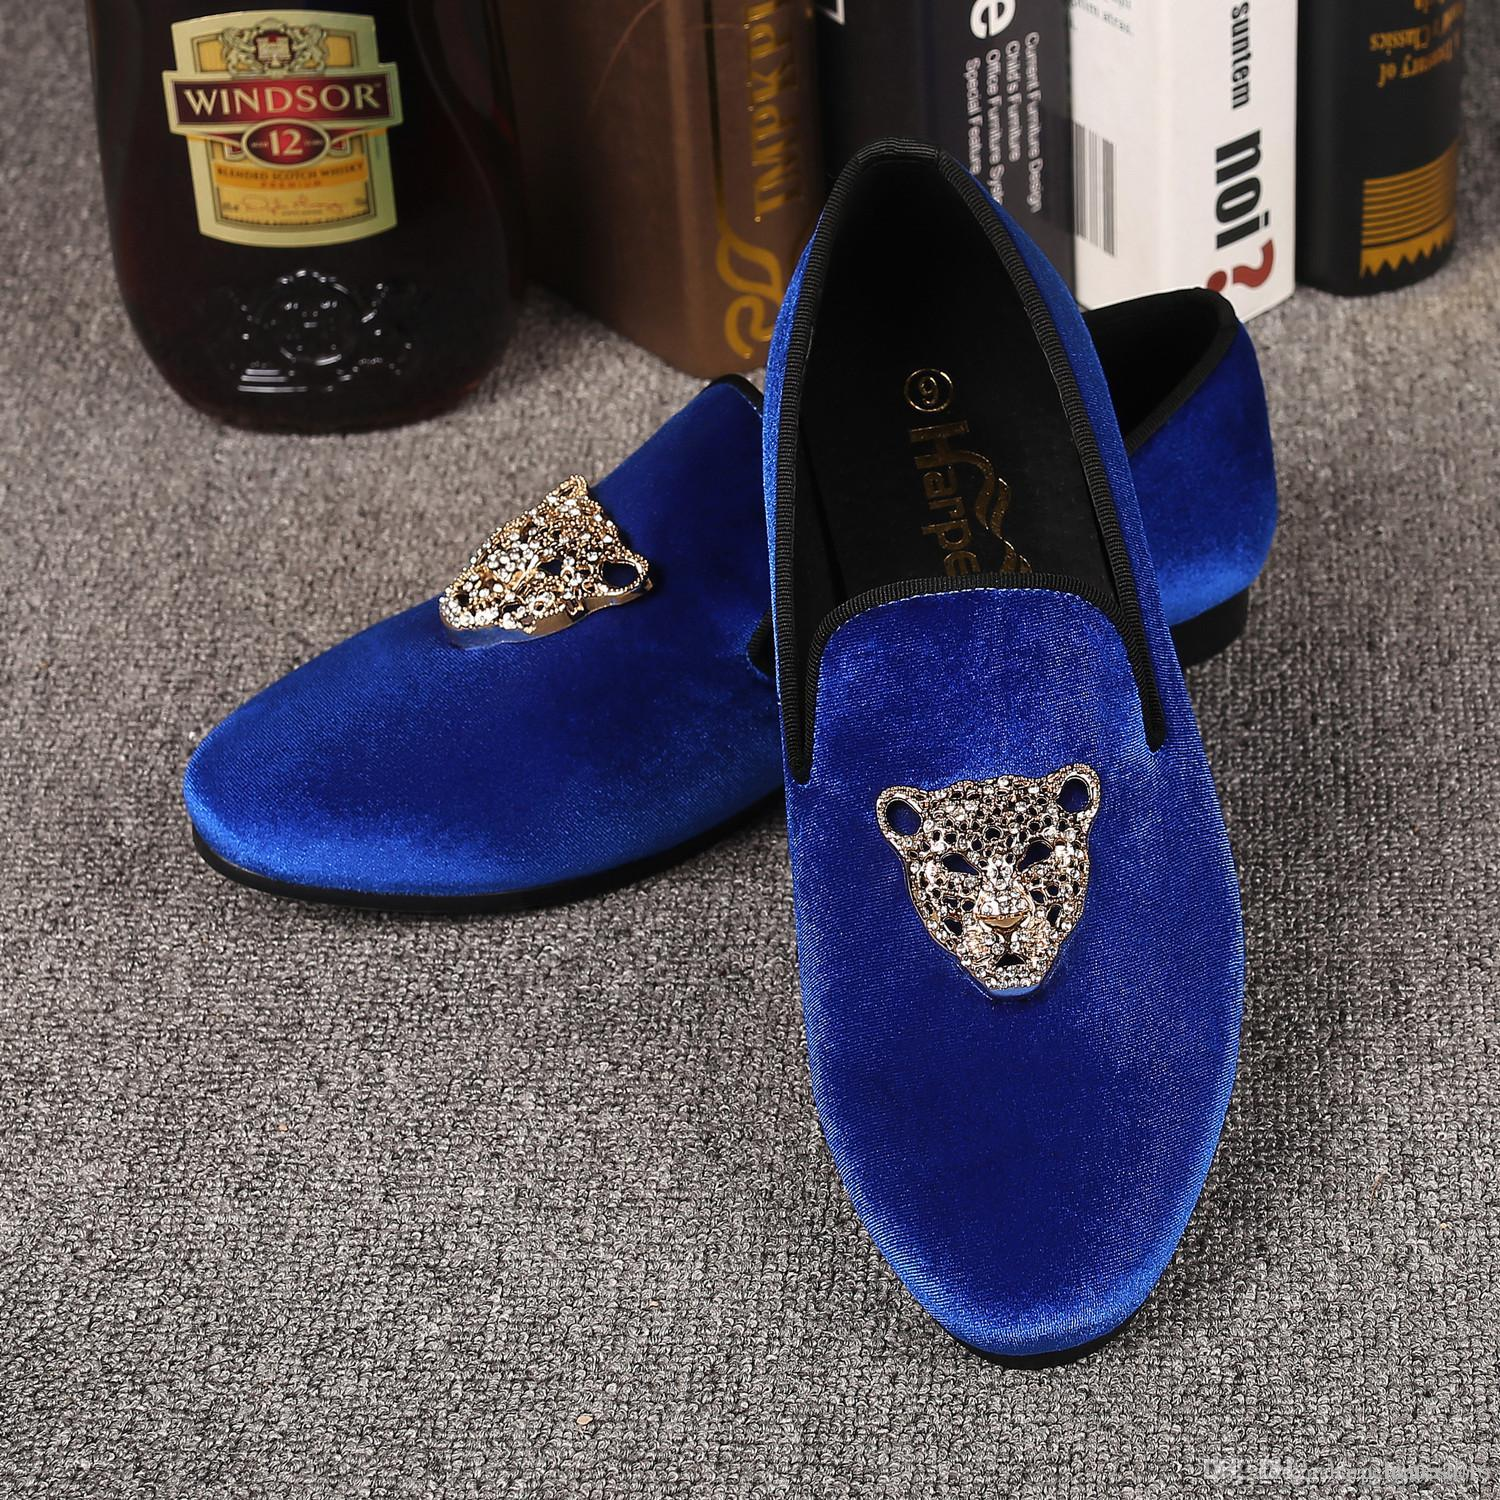 15cfa5b4f Harpelunde Animal Rhinestone Buckle Dress Shoes For Men Evening Blue Velvet  Slipper Shoes Free Drop Shipping Size 7 14 Birkenstock Shoes Brown Dress  Shoes ...